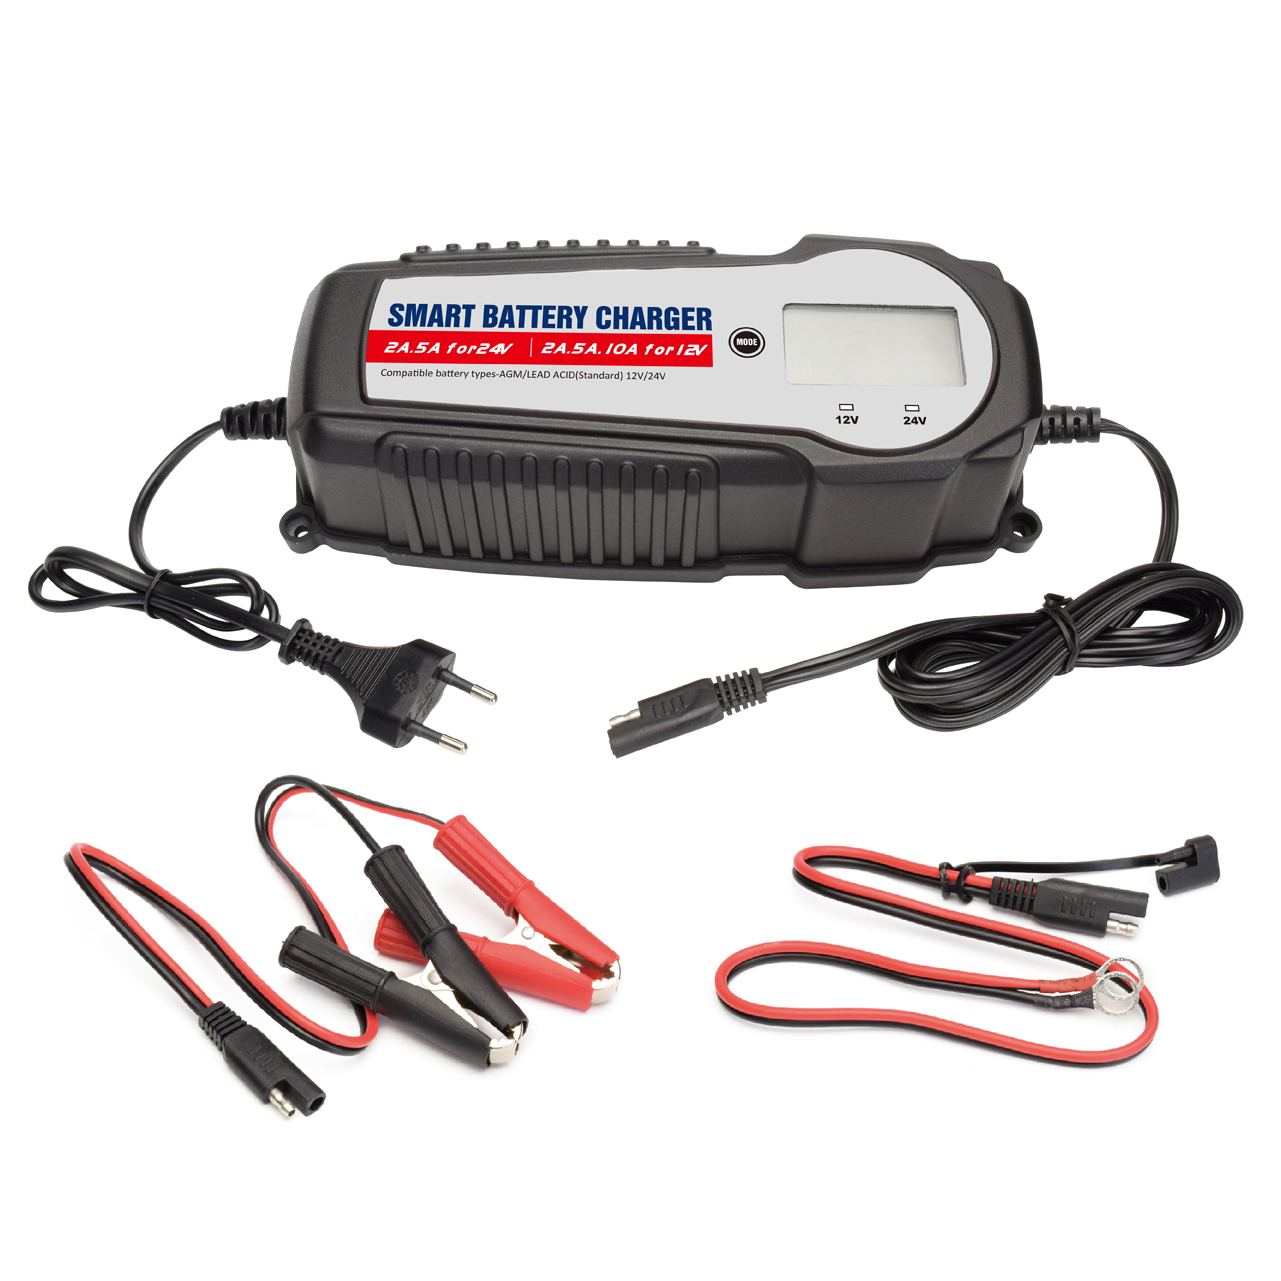 Smart Battery Charger W Lce Buy 12v 24v Chargerautomatic For All Types Te4 0268